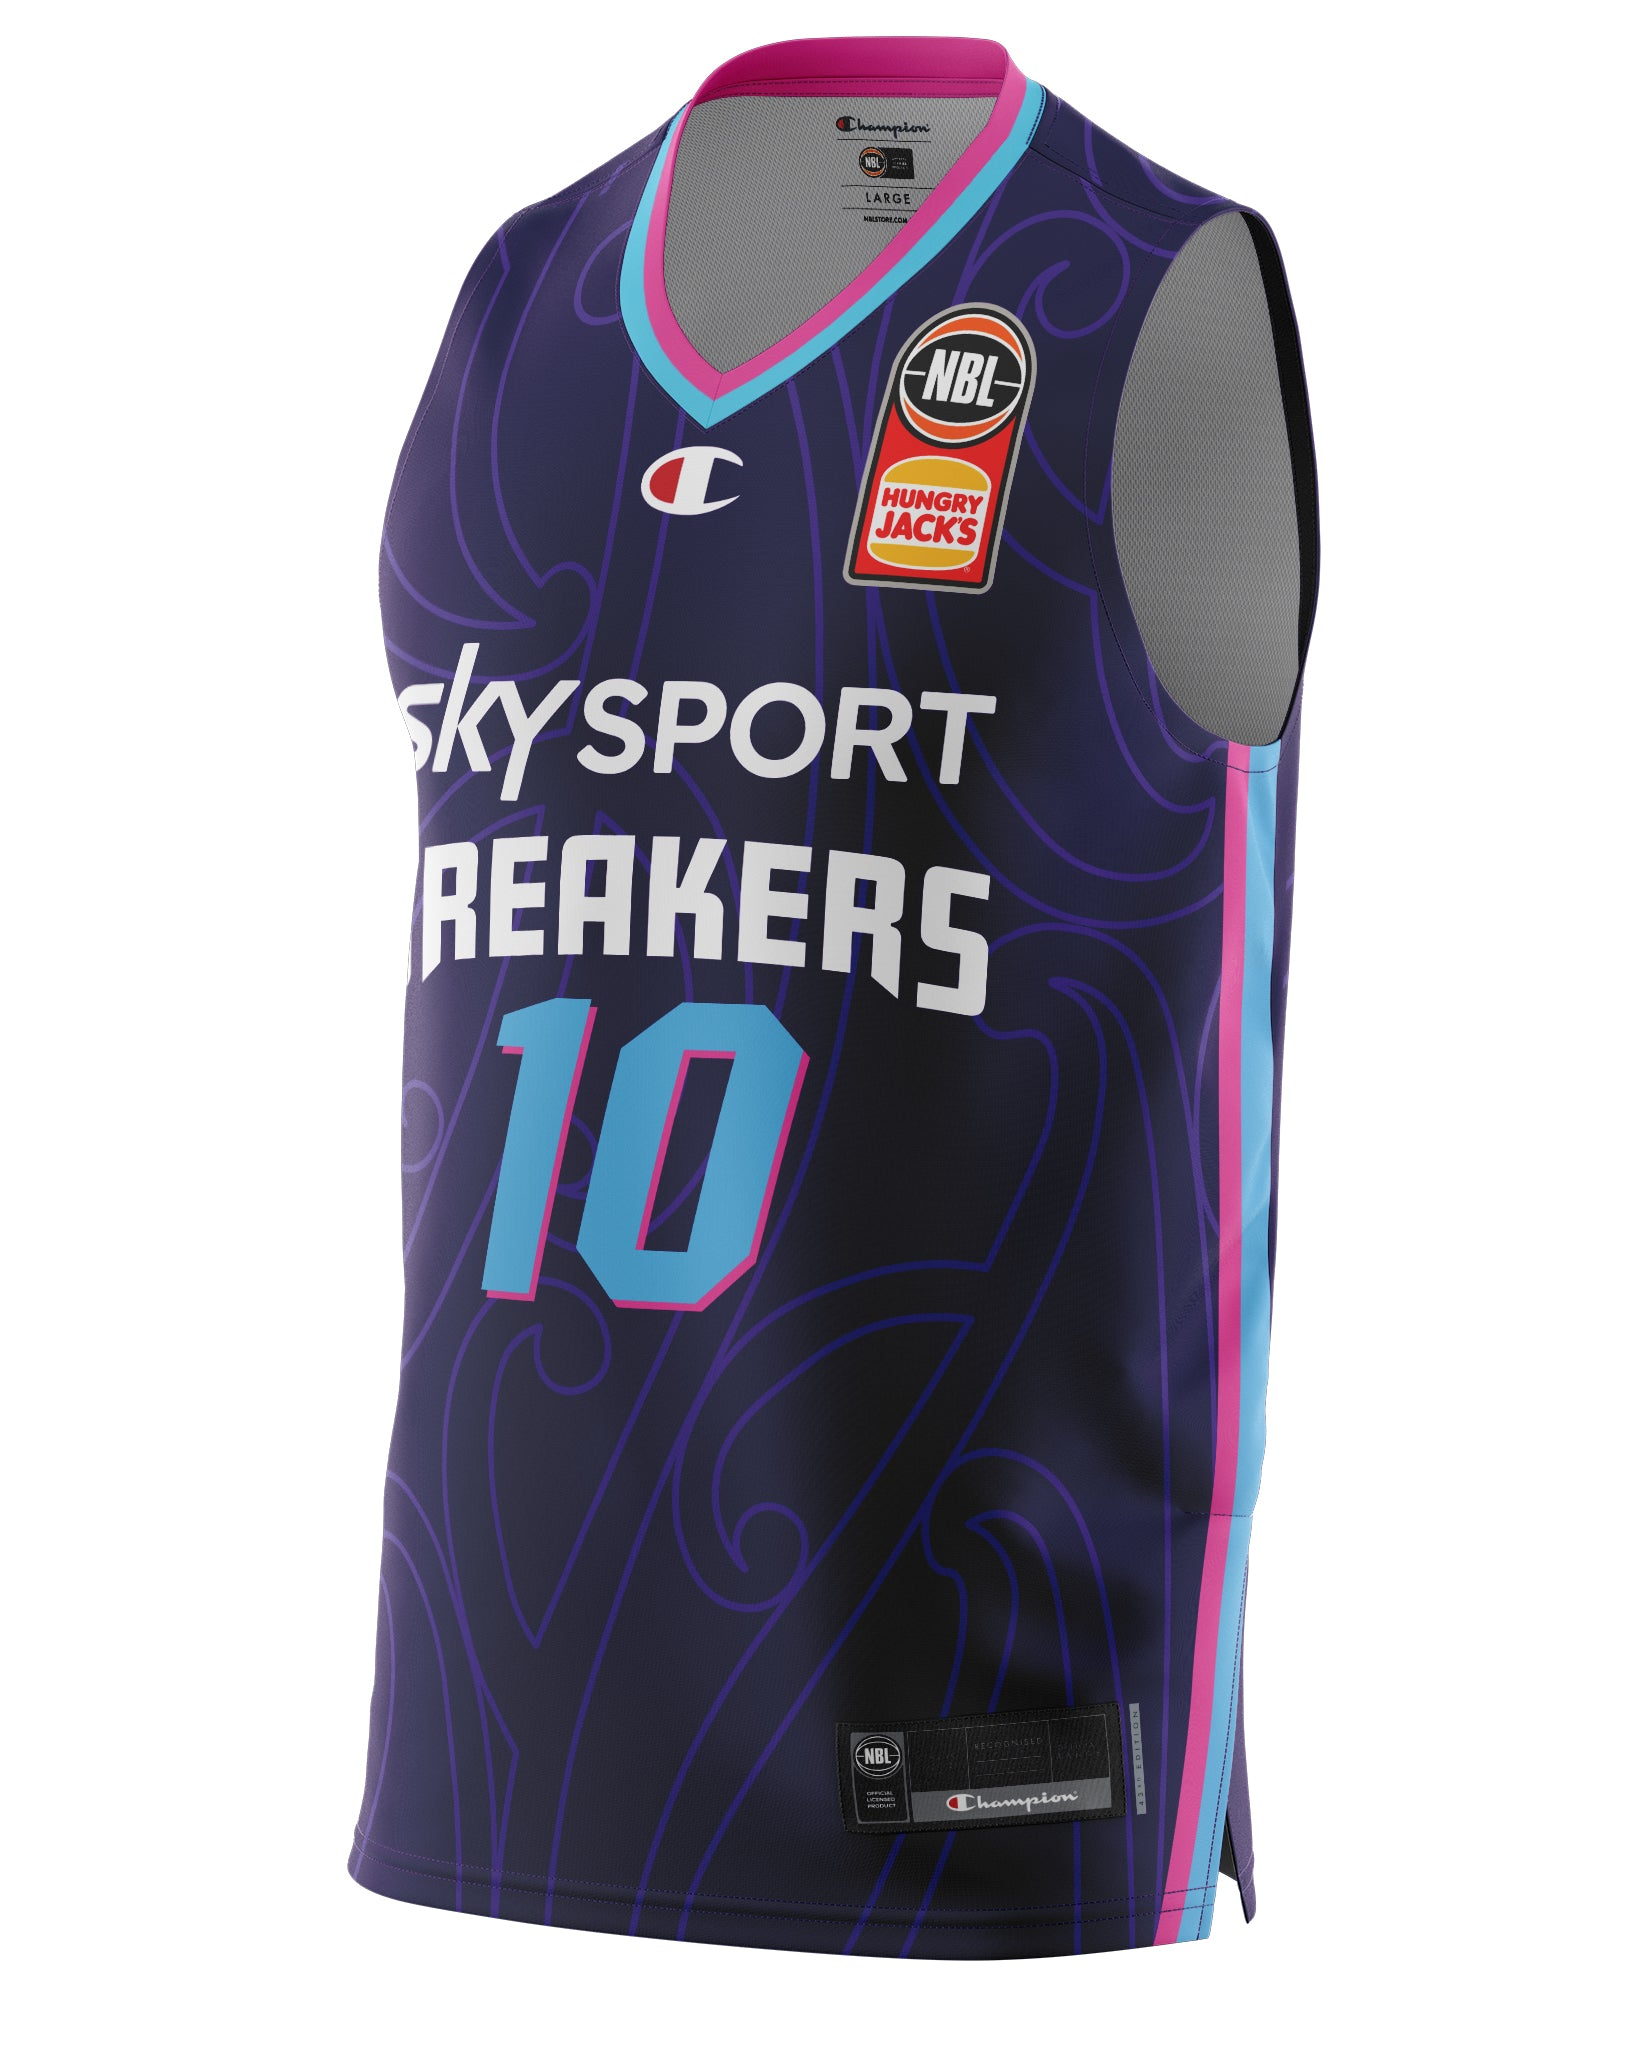 New Zealand Breakers 20/21 Authentic Home Jersey - Tom Abercrombie